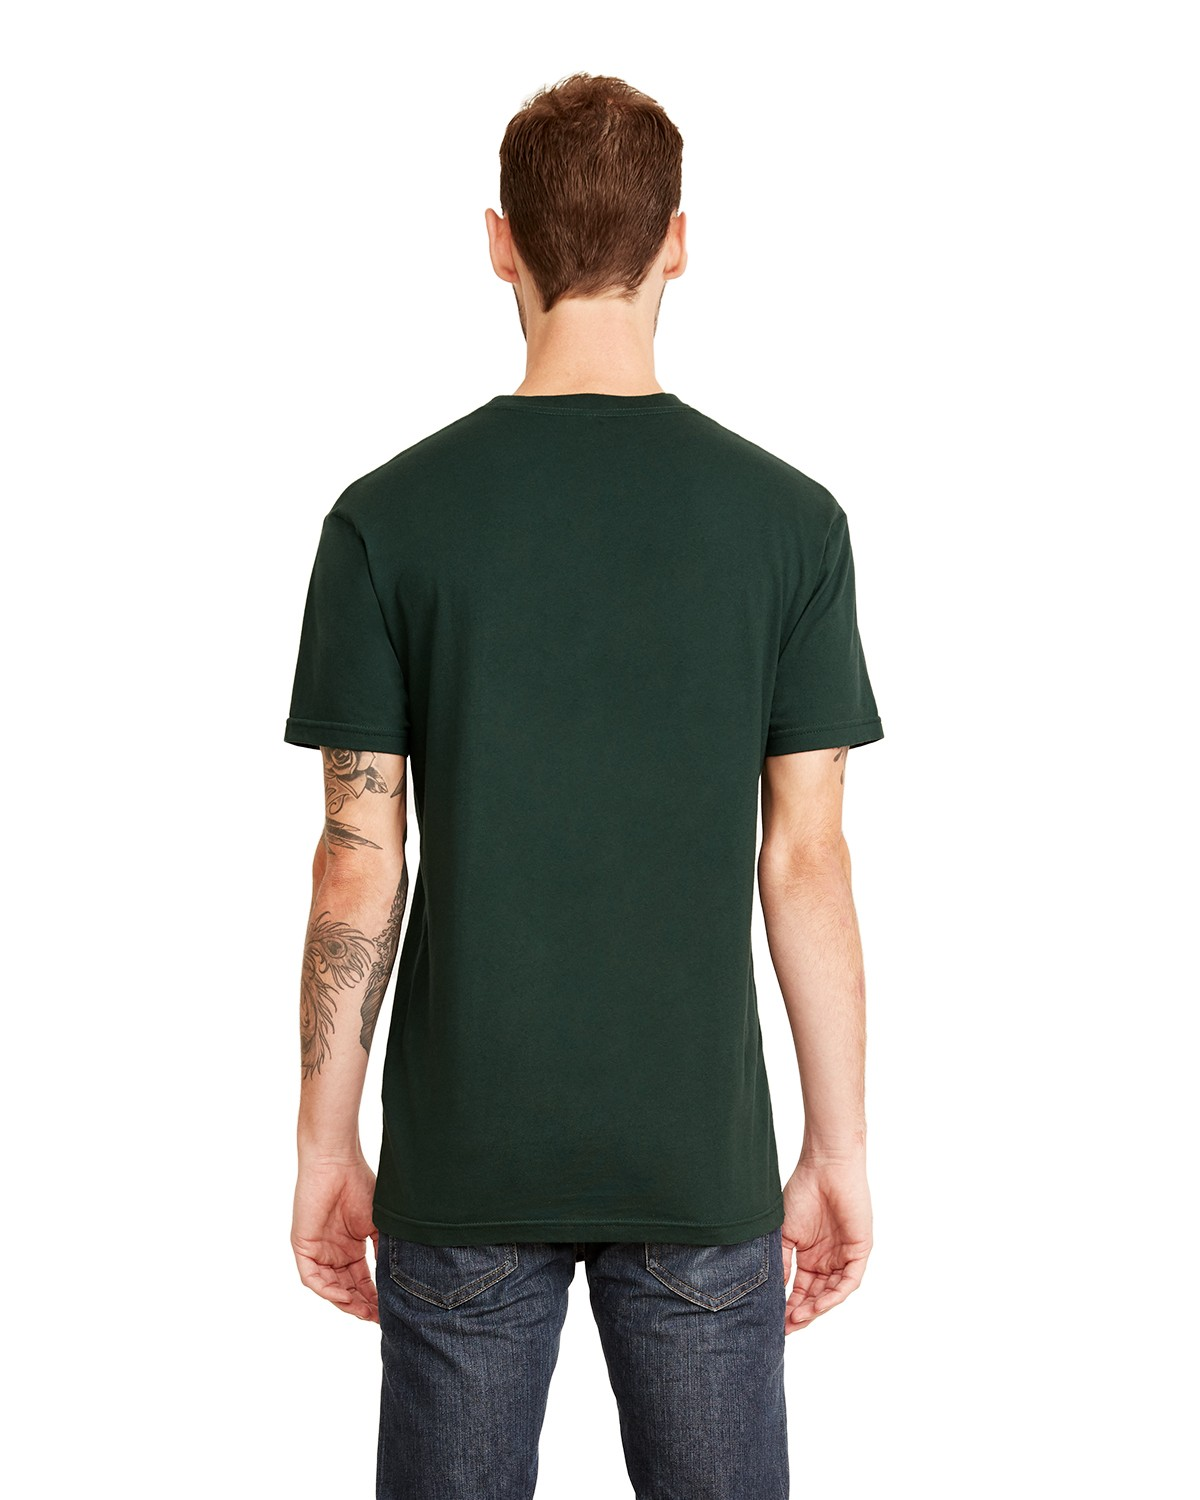 3605 Next Level FOREST GREEN